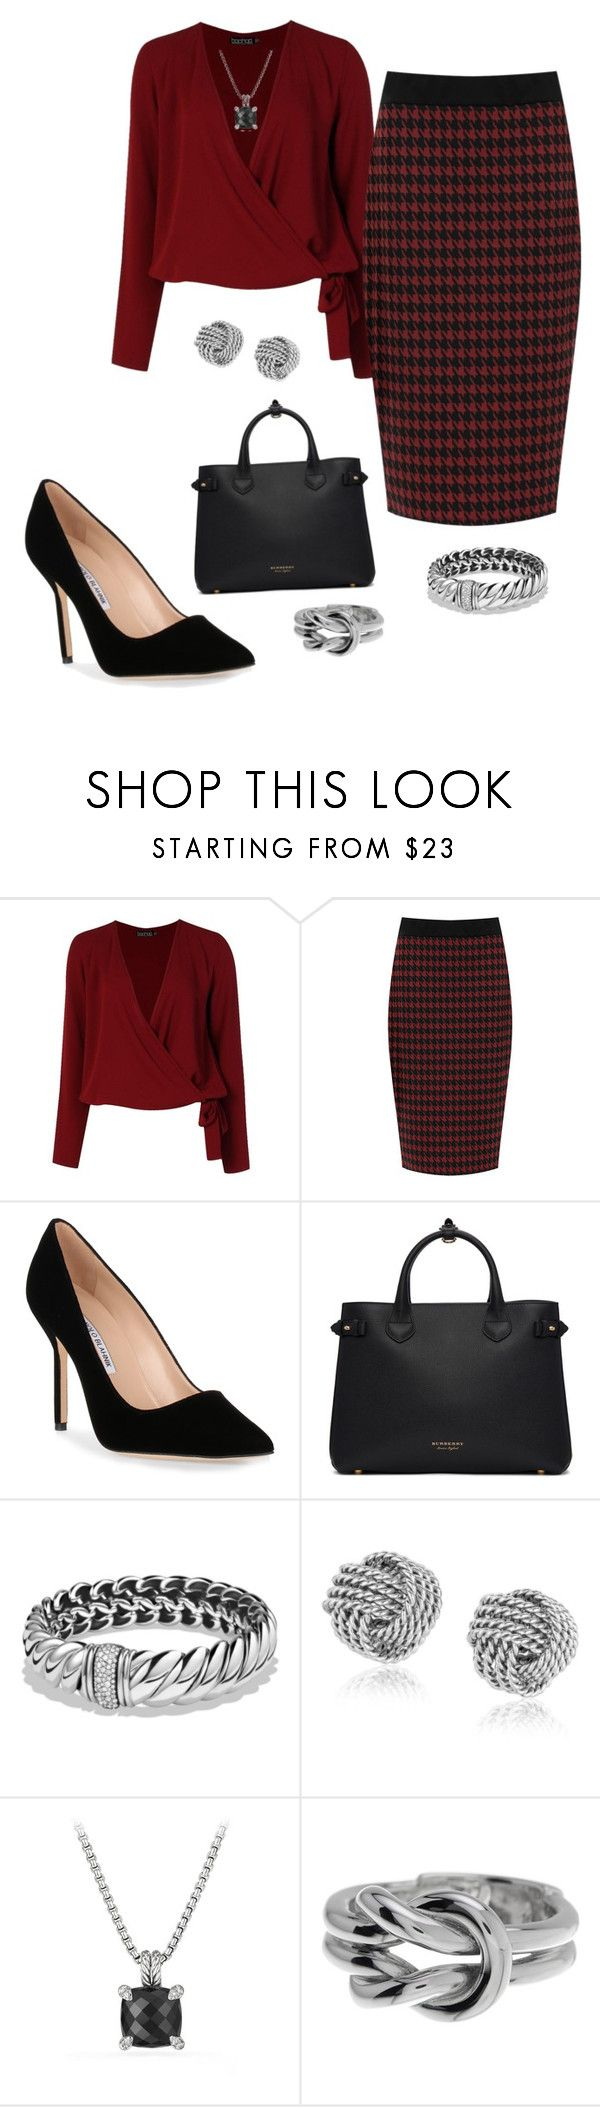 """""""Client Meeting"""" by sommer-reign ❤ liked on Polyvore featuring Boohoo, WearAll, Manolo Blahnik, Burberry, David Yurman, Gucci and plus size clothing"""